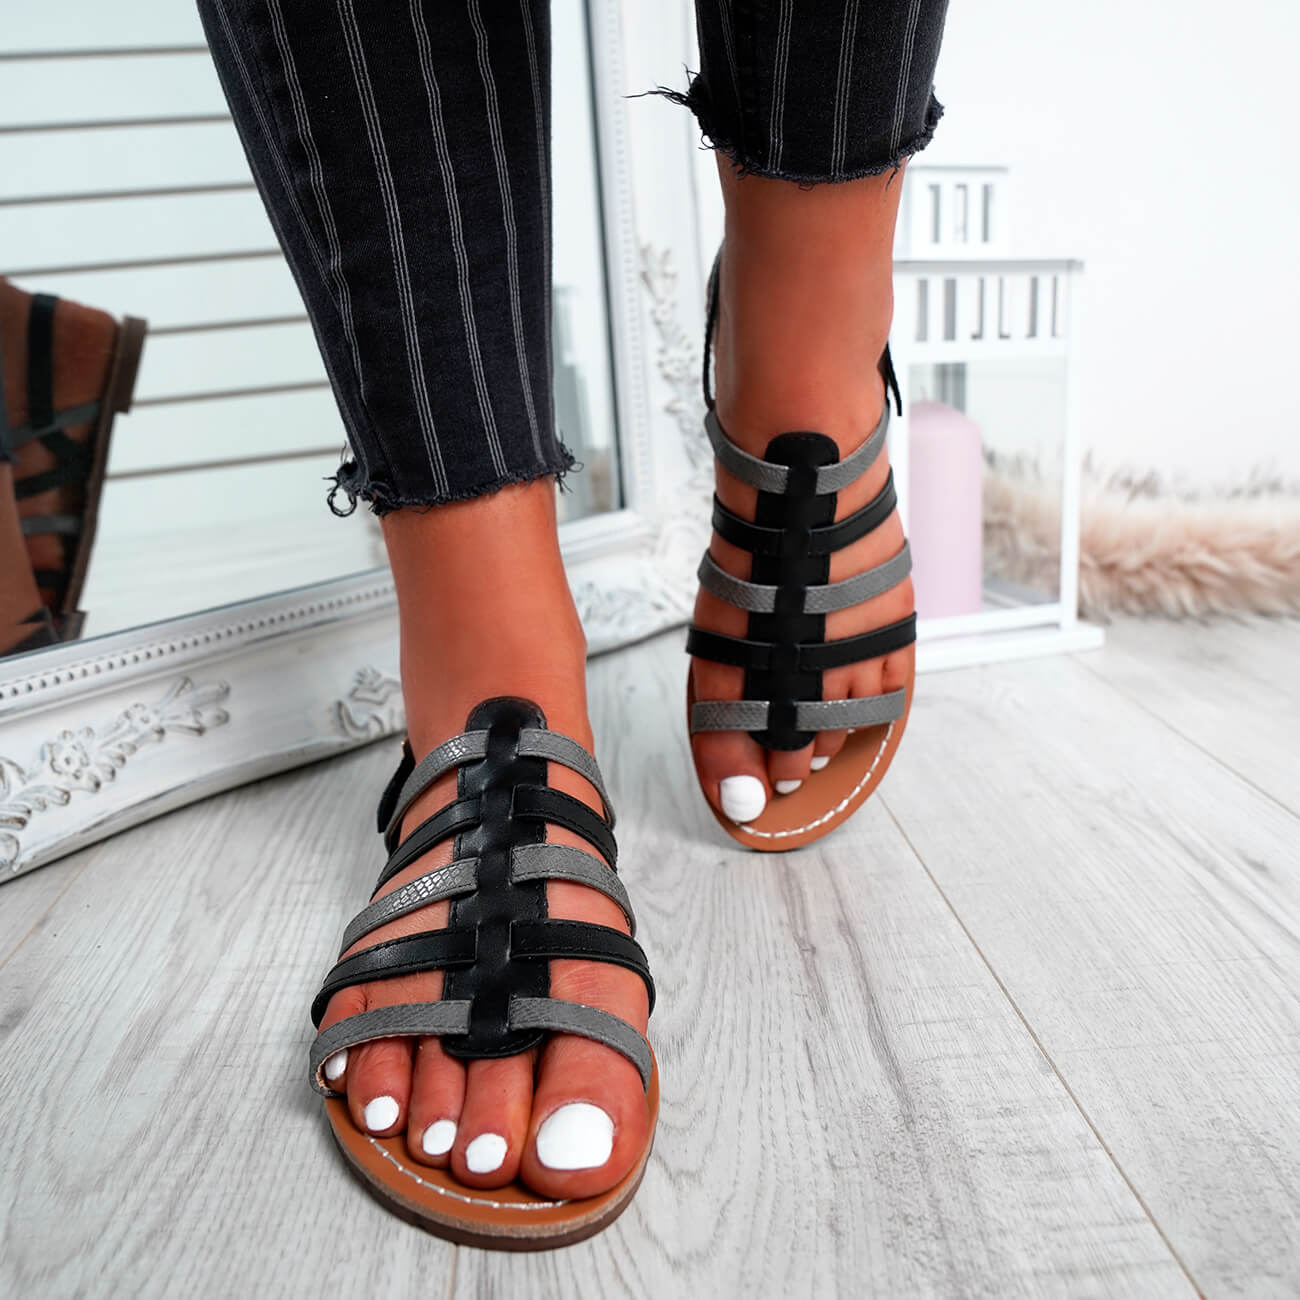 WOMENS-LADIES-BUCKLE-STRAP-FLAT-SUMMER-SANDALS-CASUAL-HOLIDAY-COMFY-SHOES-SIZE thumbnail 8